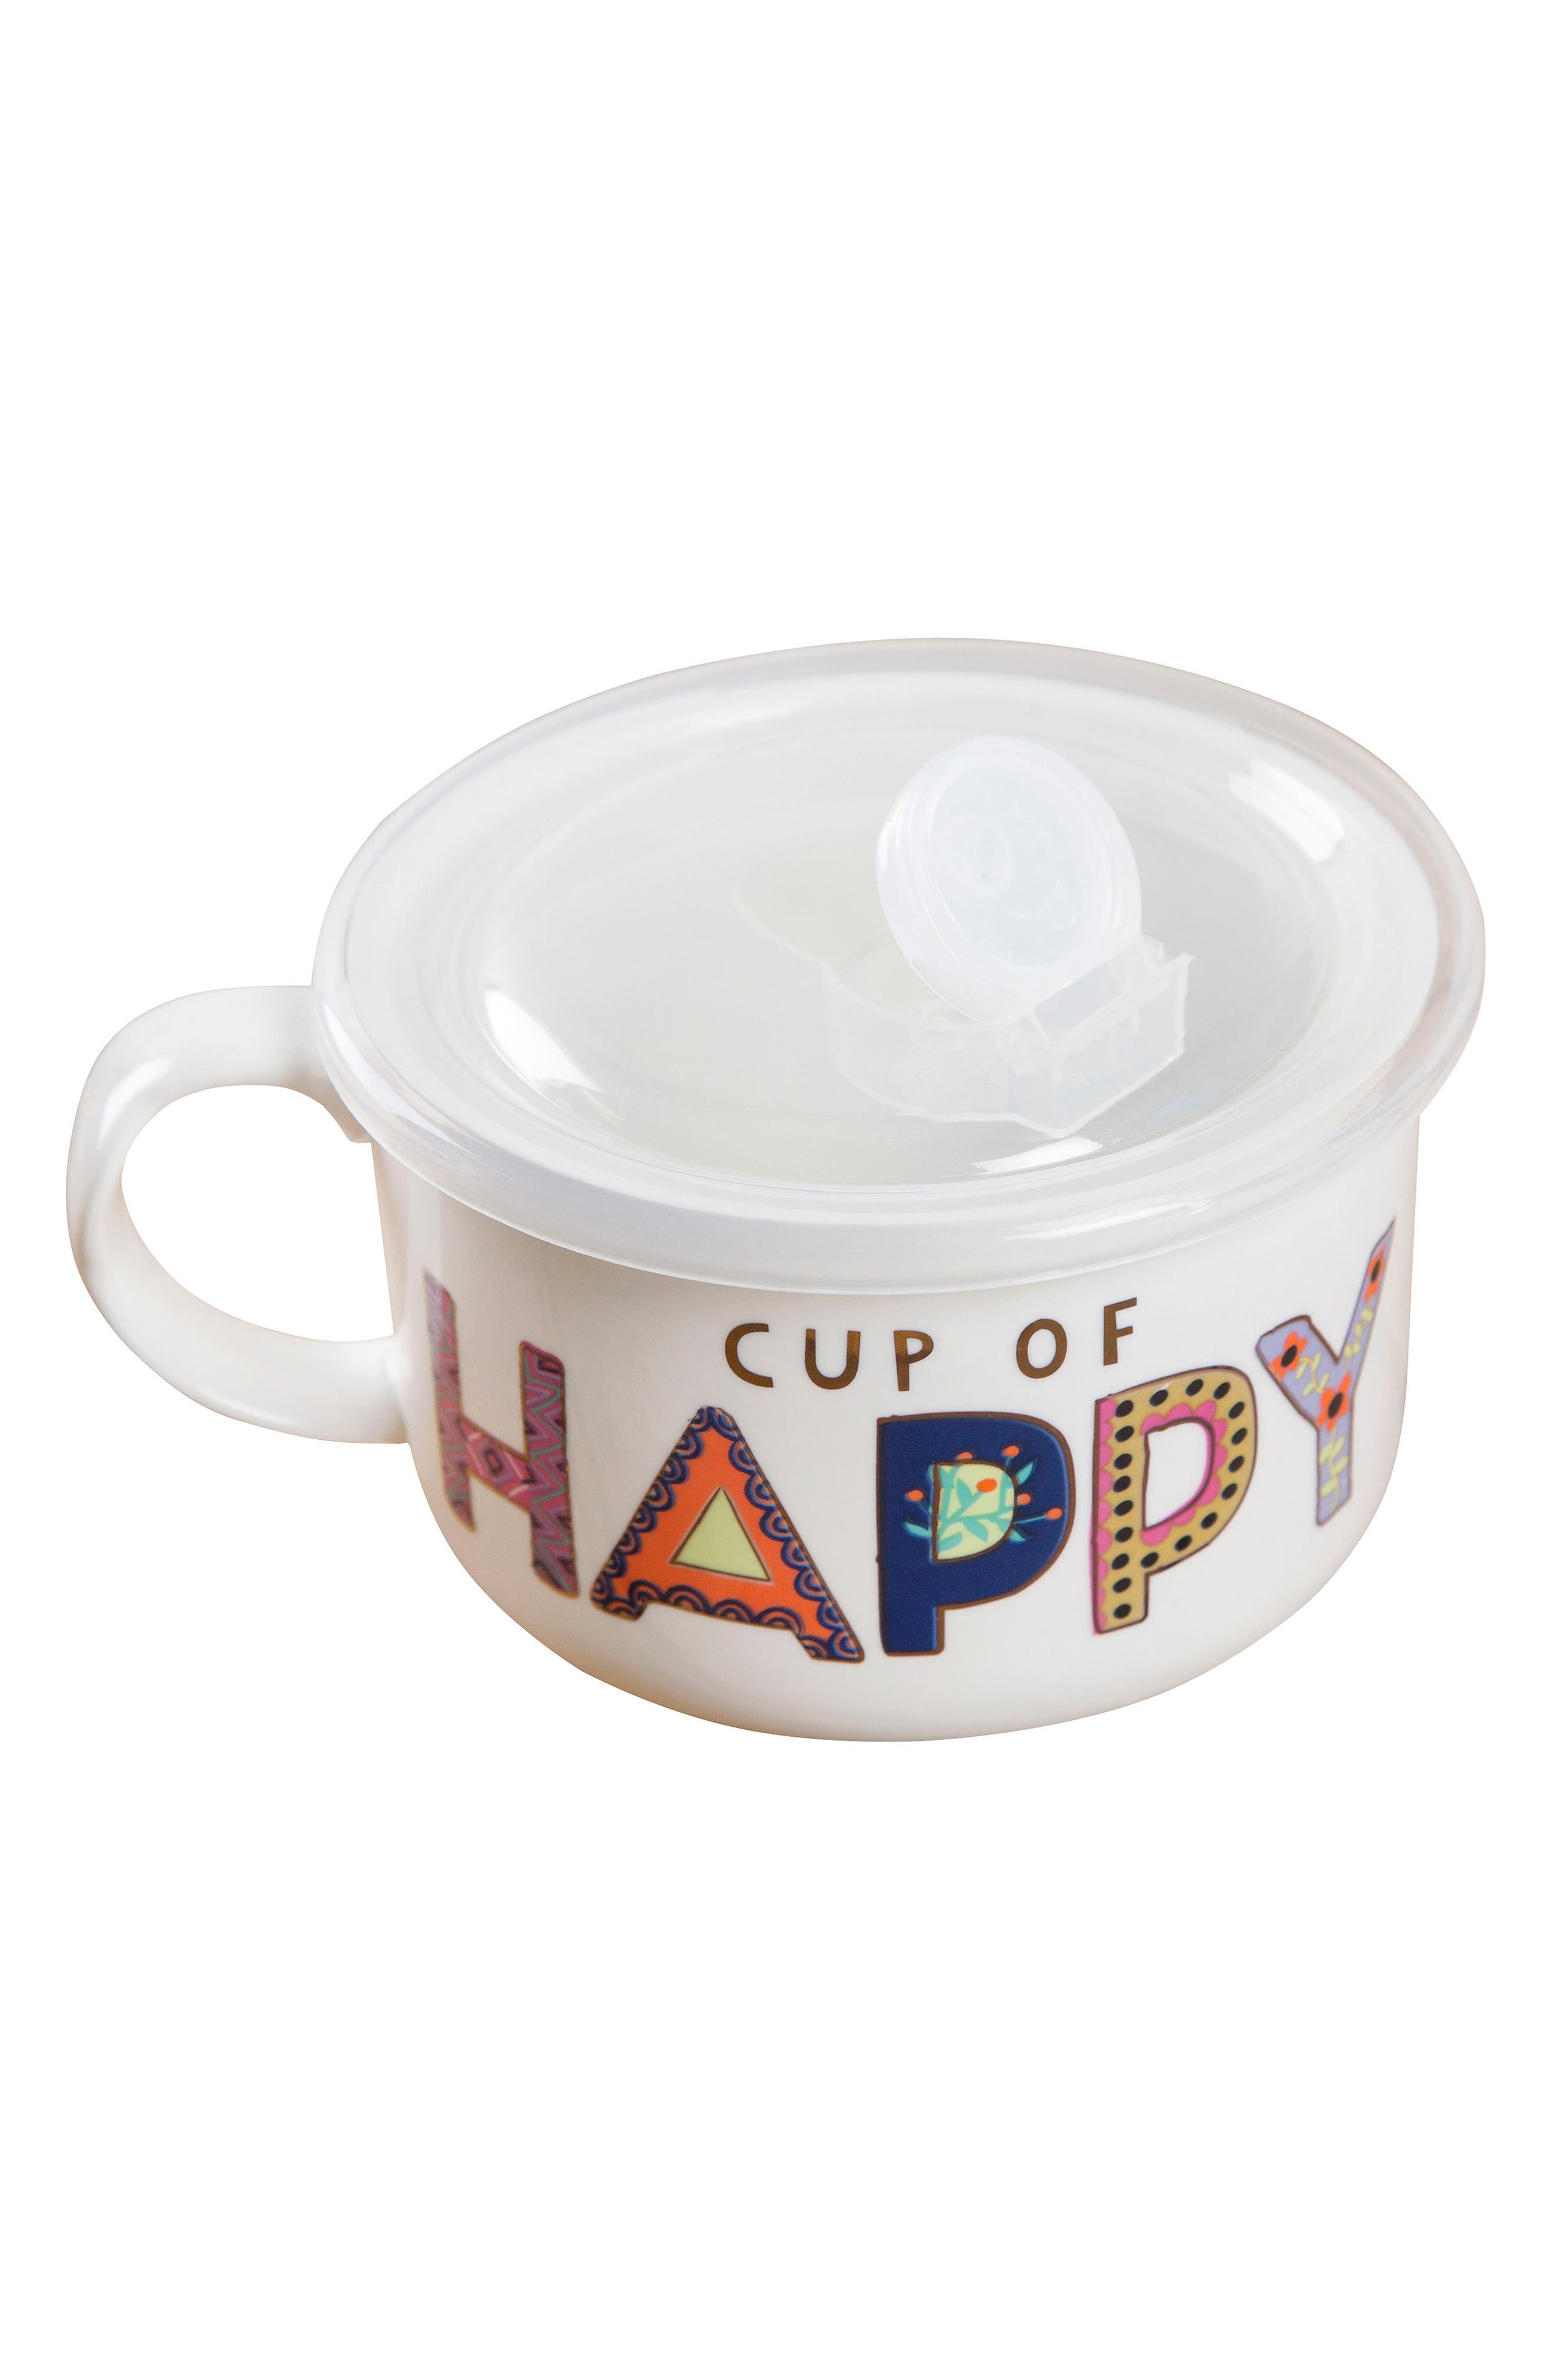 Cup of Happy Lidded Ceramic Soup Mug,                             Main thumbnail 1, color,                             Cup Of Happy